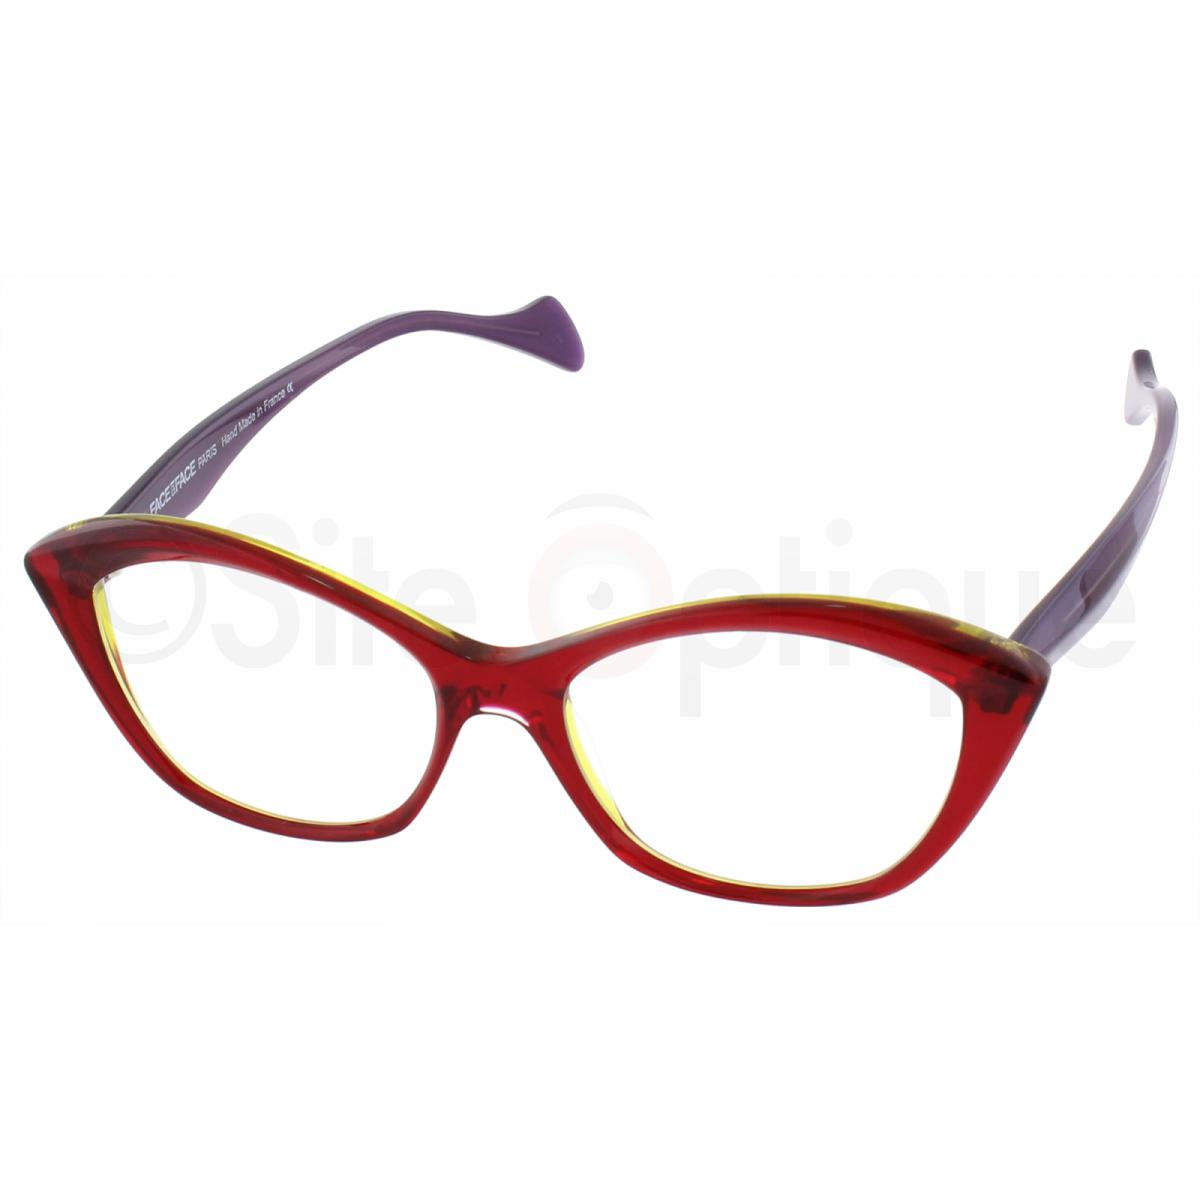 Lunettes de vue FACE A FACE INESS 2 INESS 2 COL 401. FACE A FACE INESS 2  INESS 2 COL 401 ca8428cd7c8a